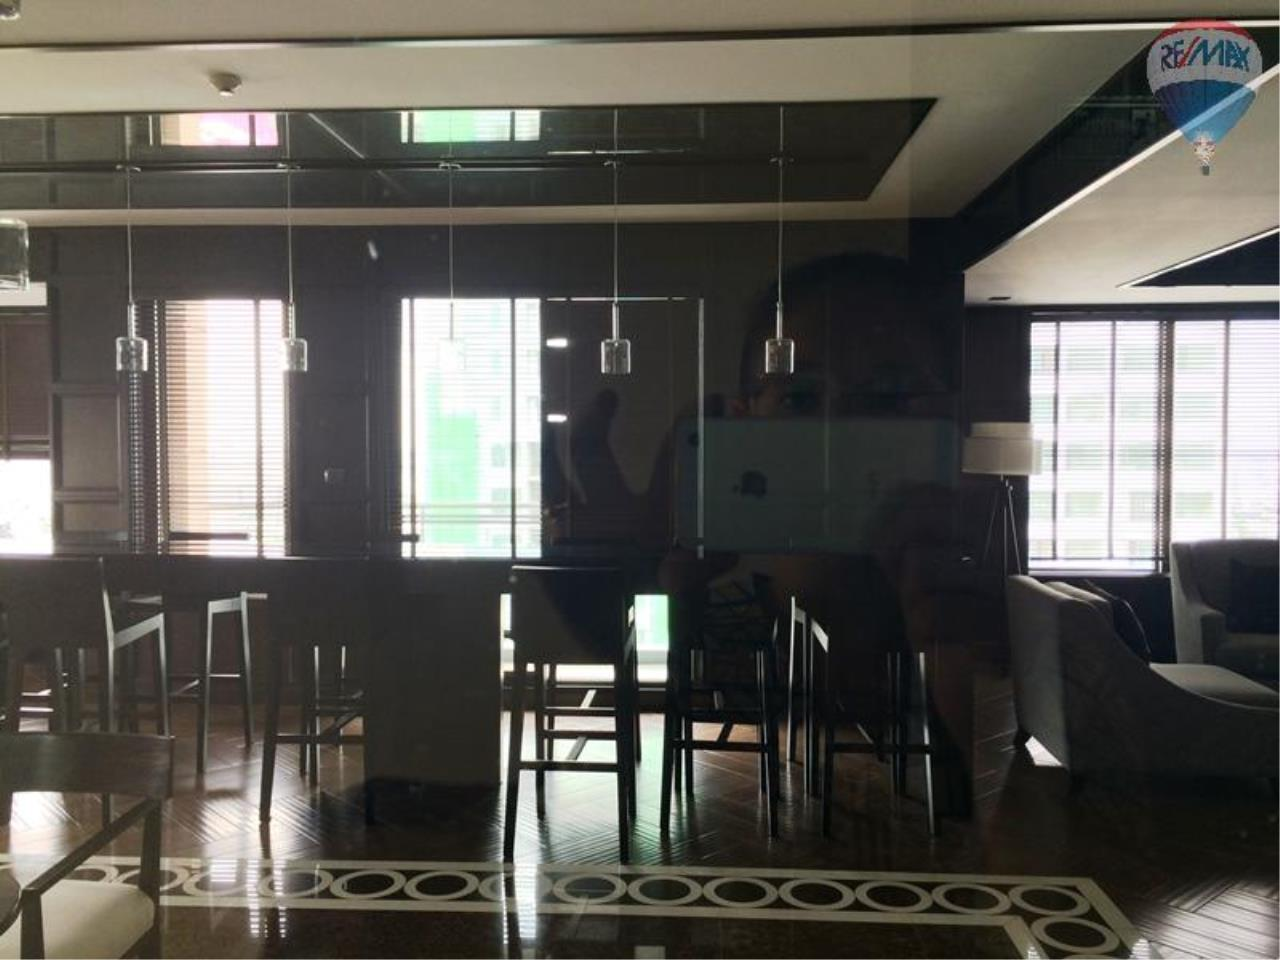 RE/MAX Properties Agency's Condo for RENT 2B/2B on Asoke, 86 sq.m., good view close to Airport link 20